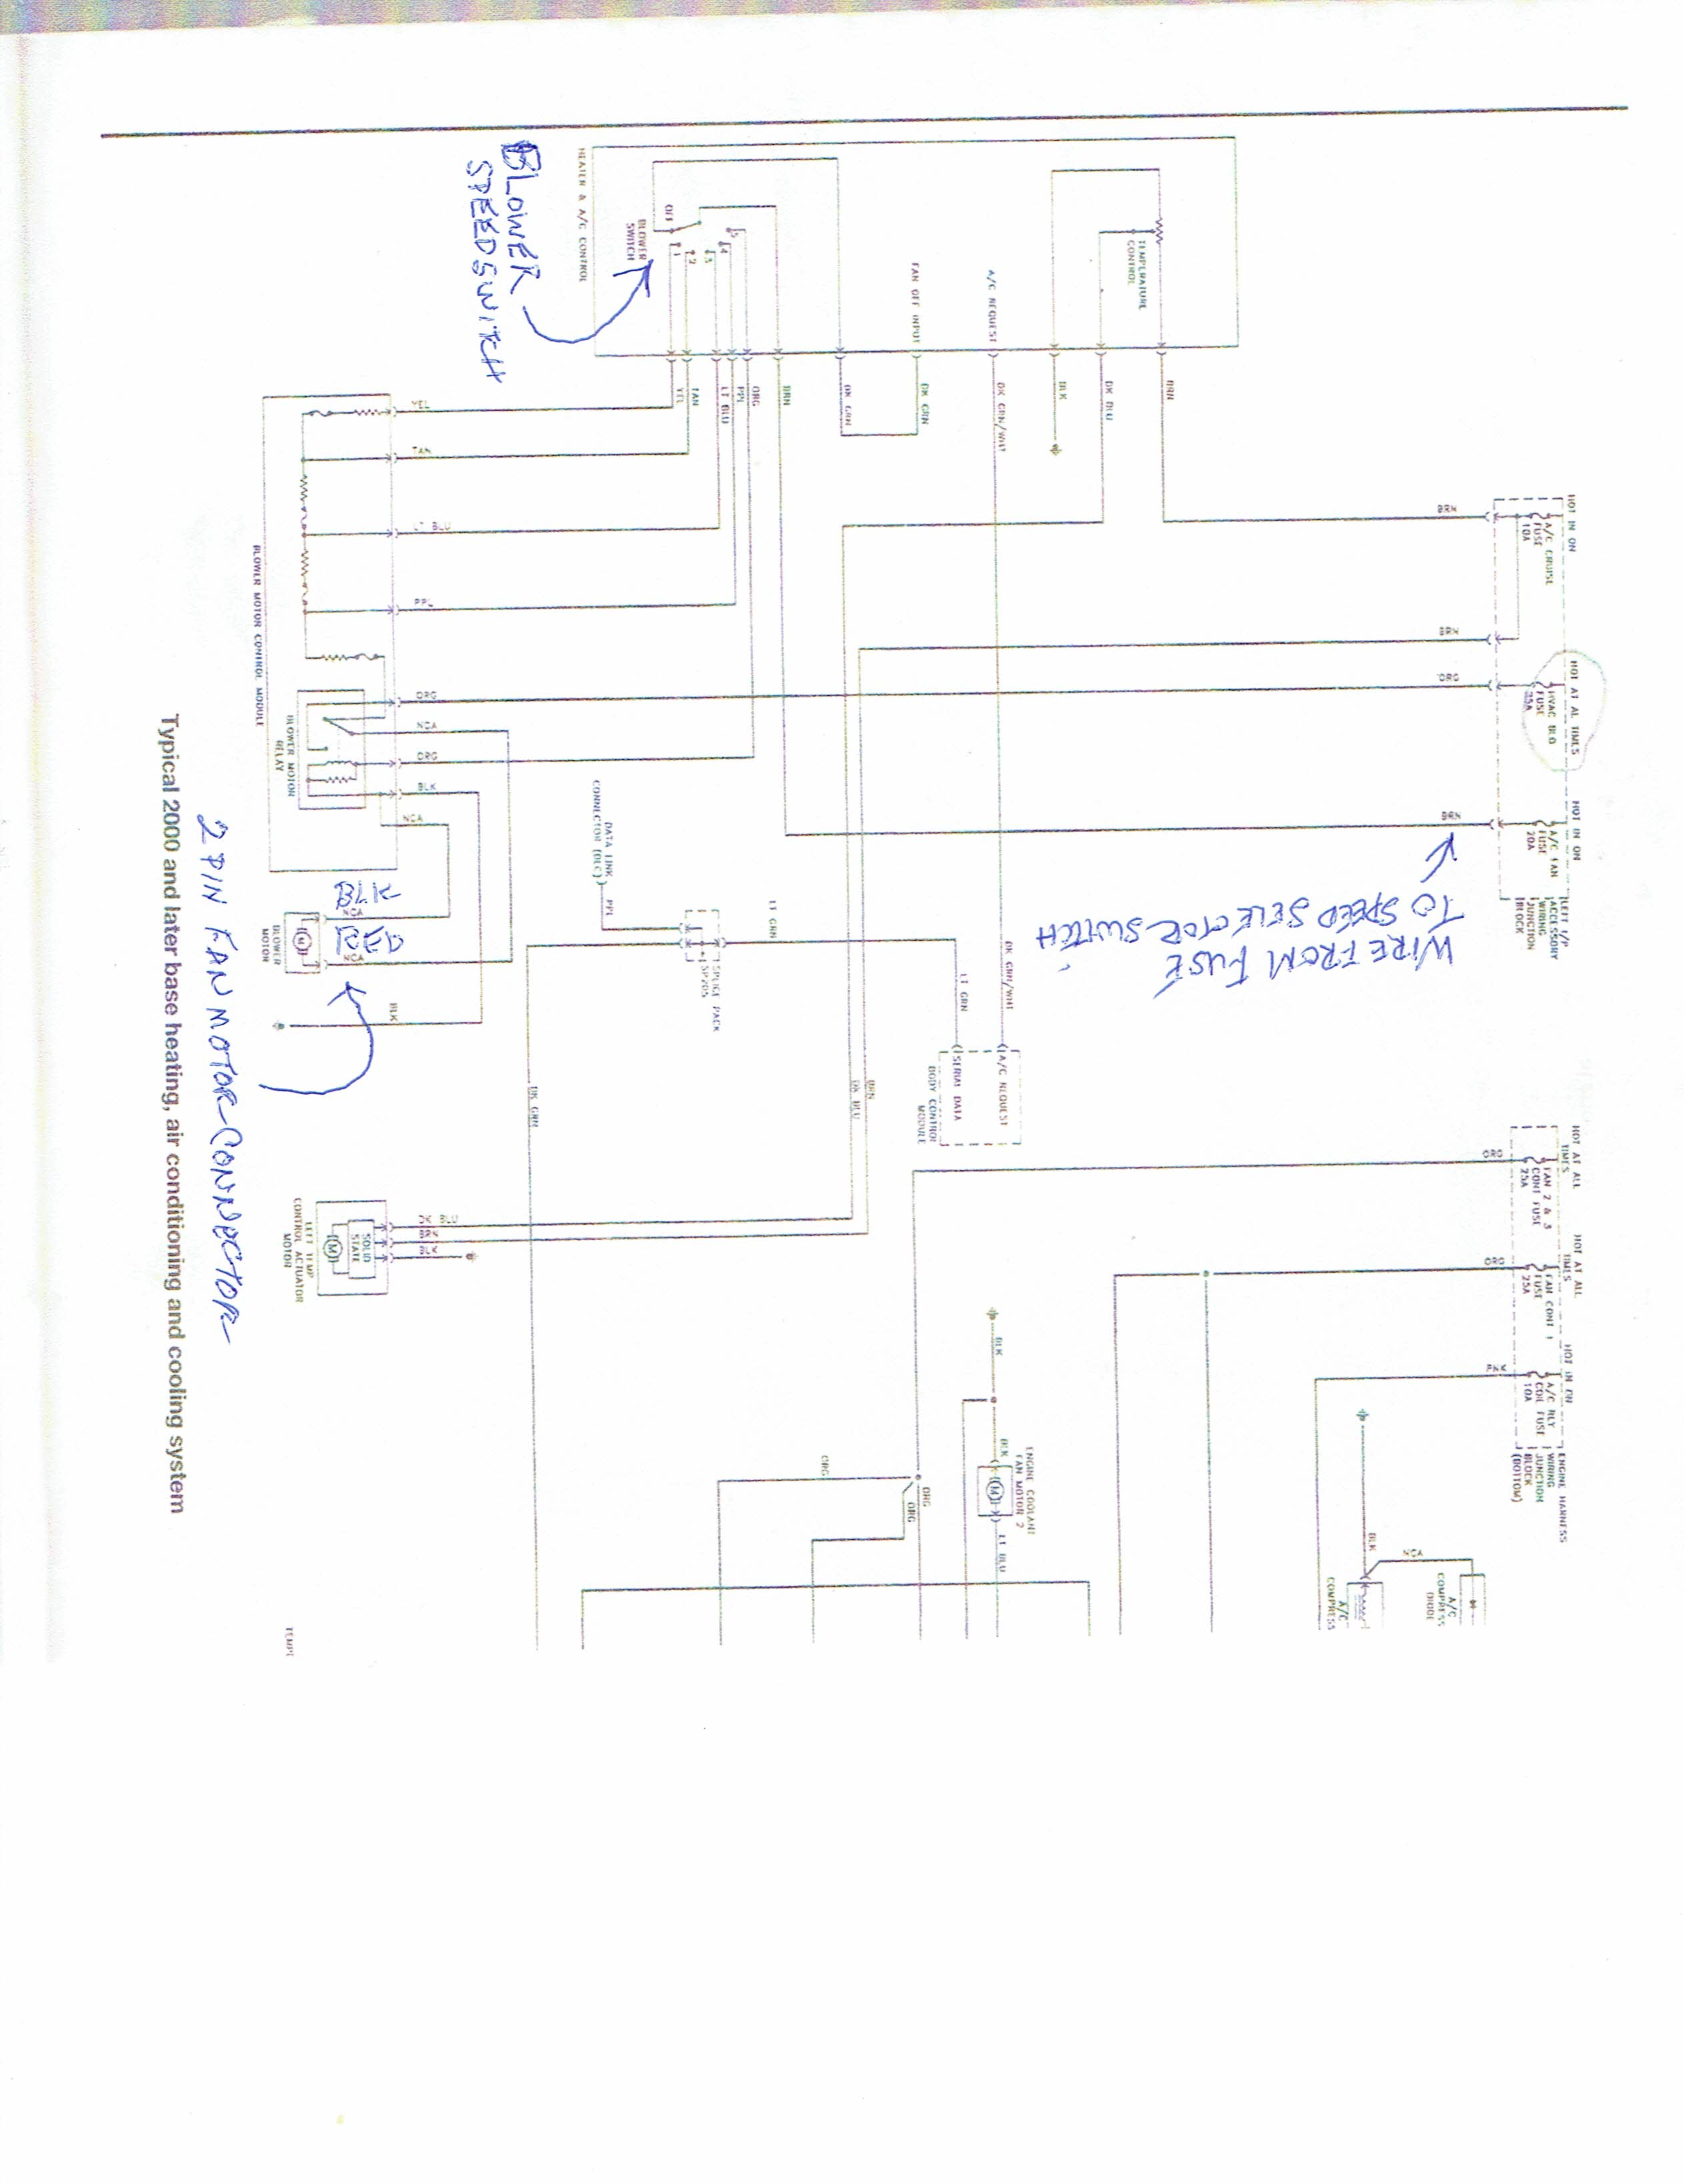 Mars Blower Motor 10586 Wiring Diagram Auto Electrical Related With